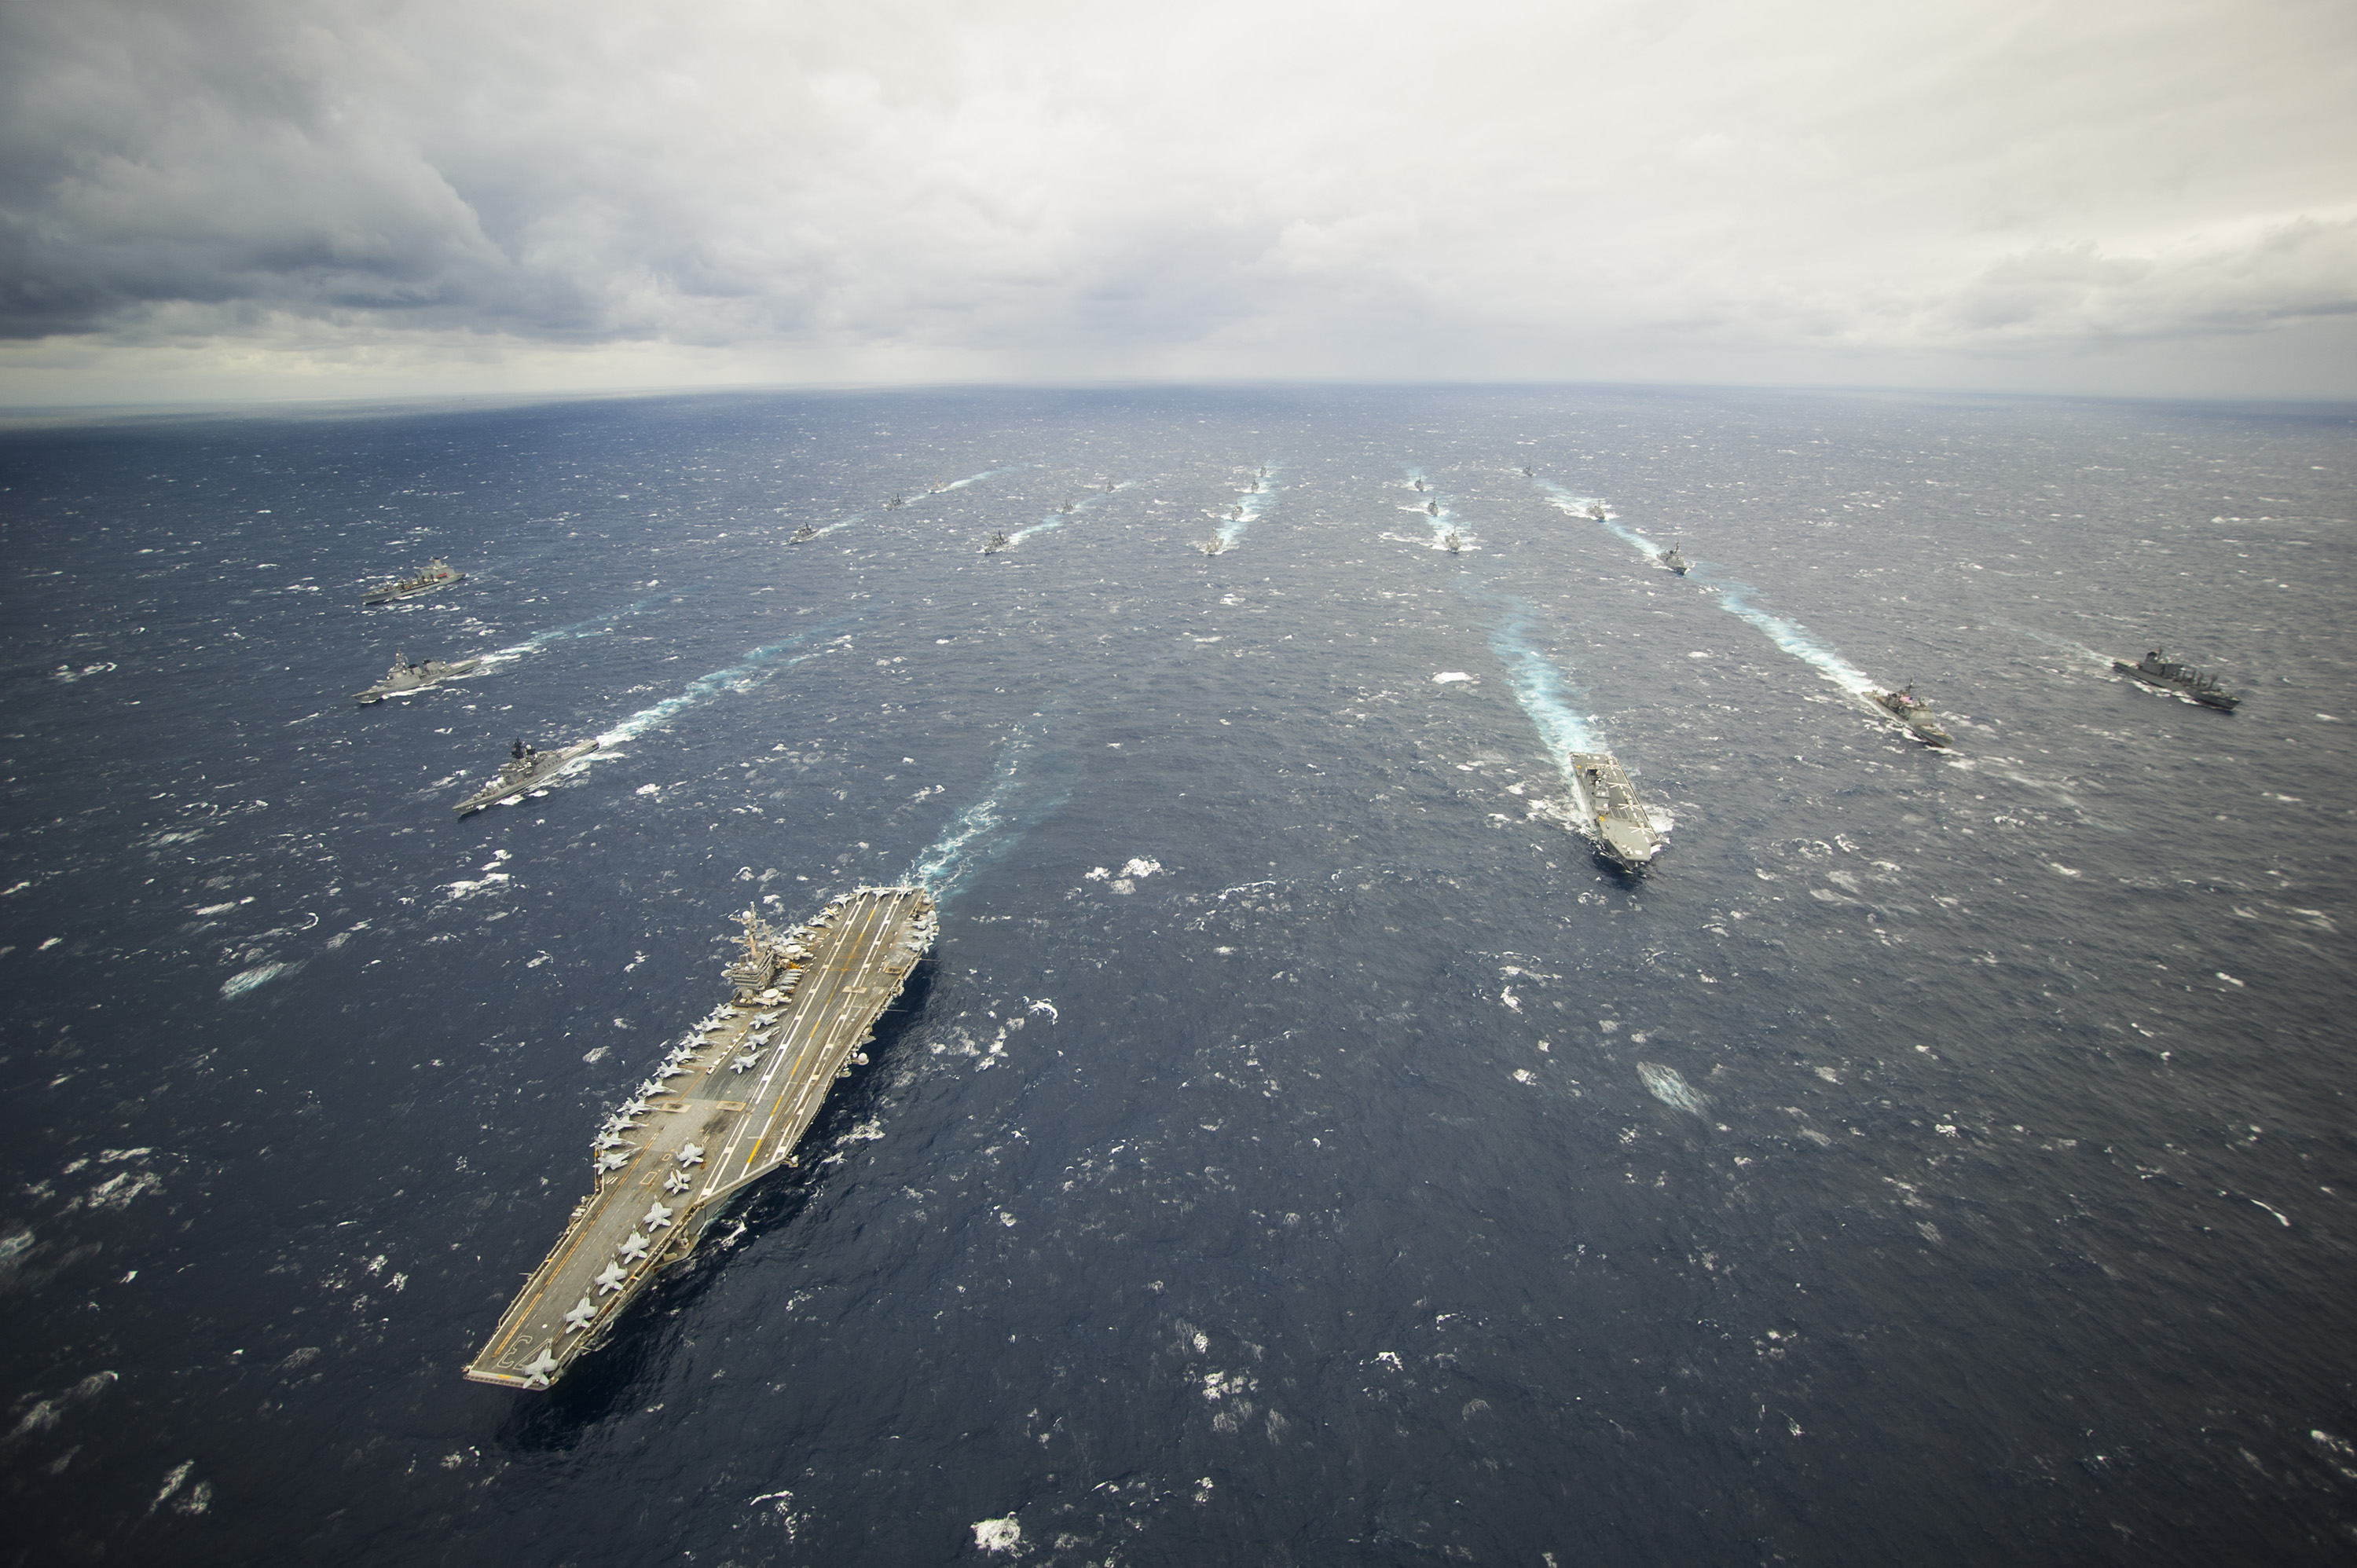 aircraft carrier USS George Washington strike group